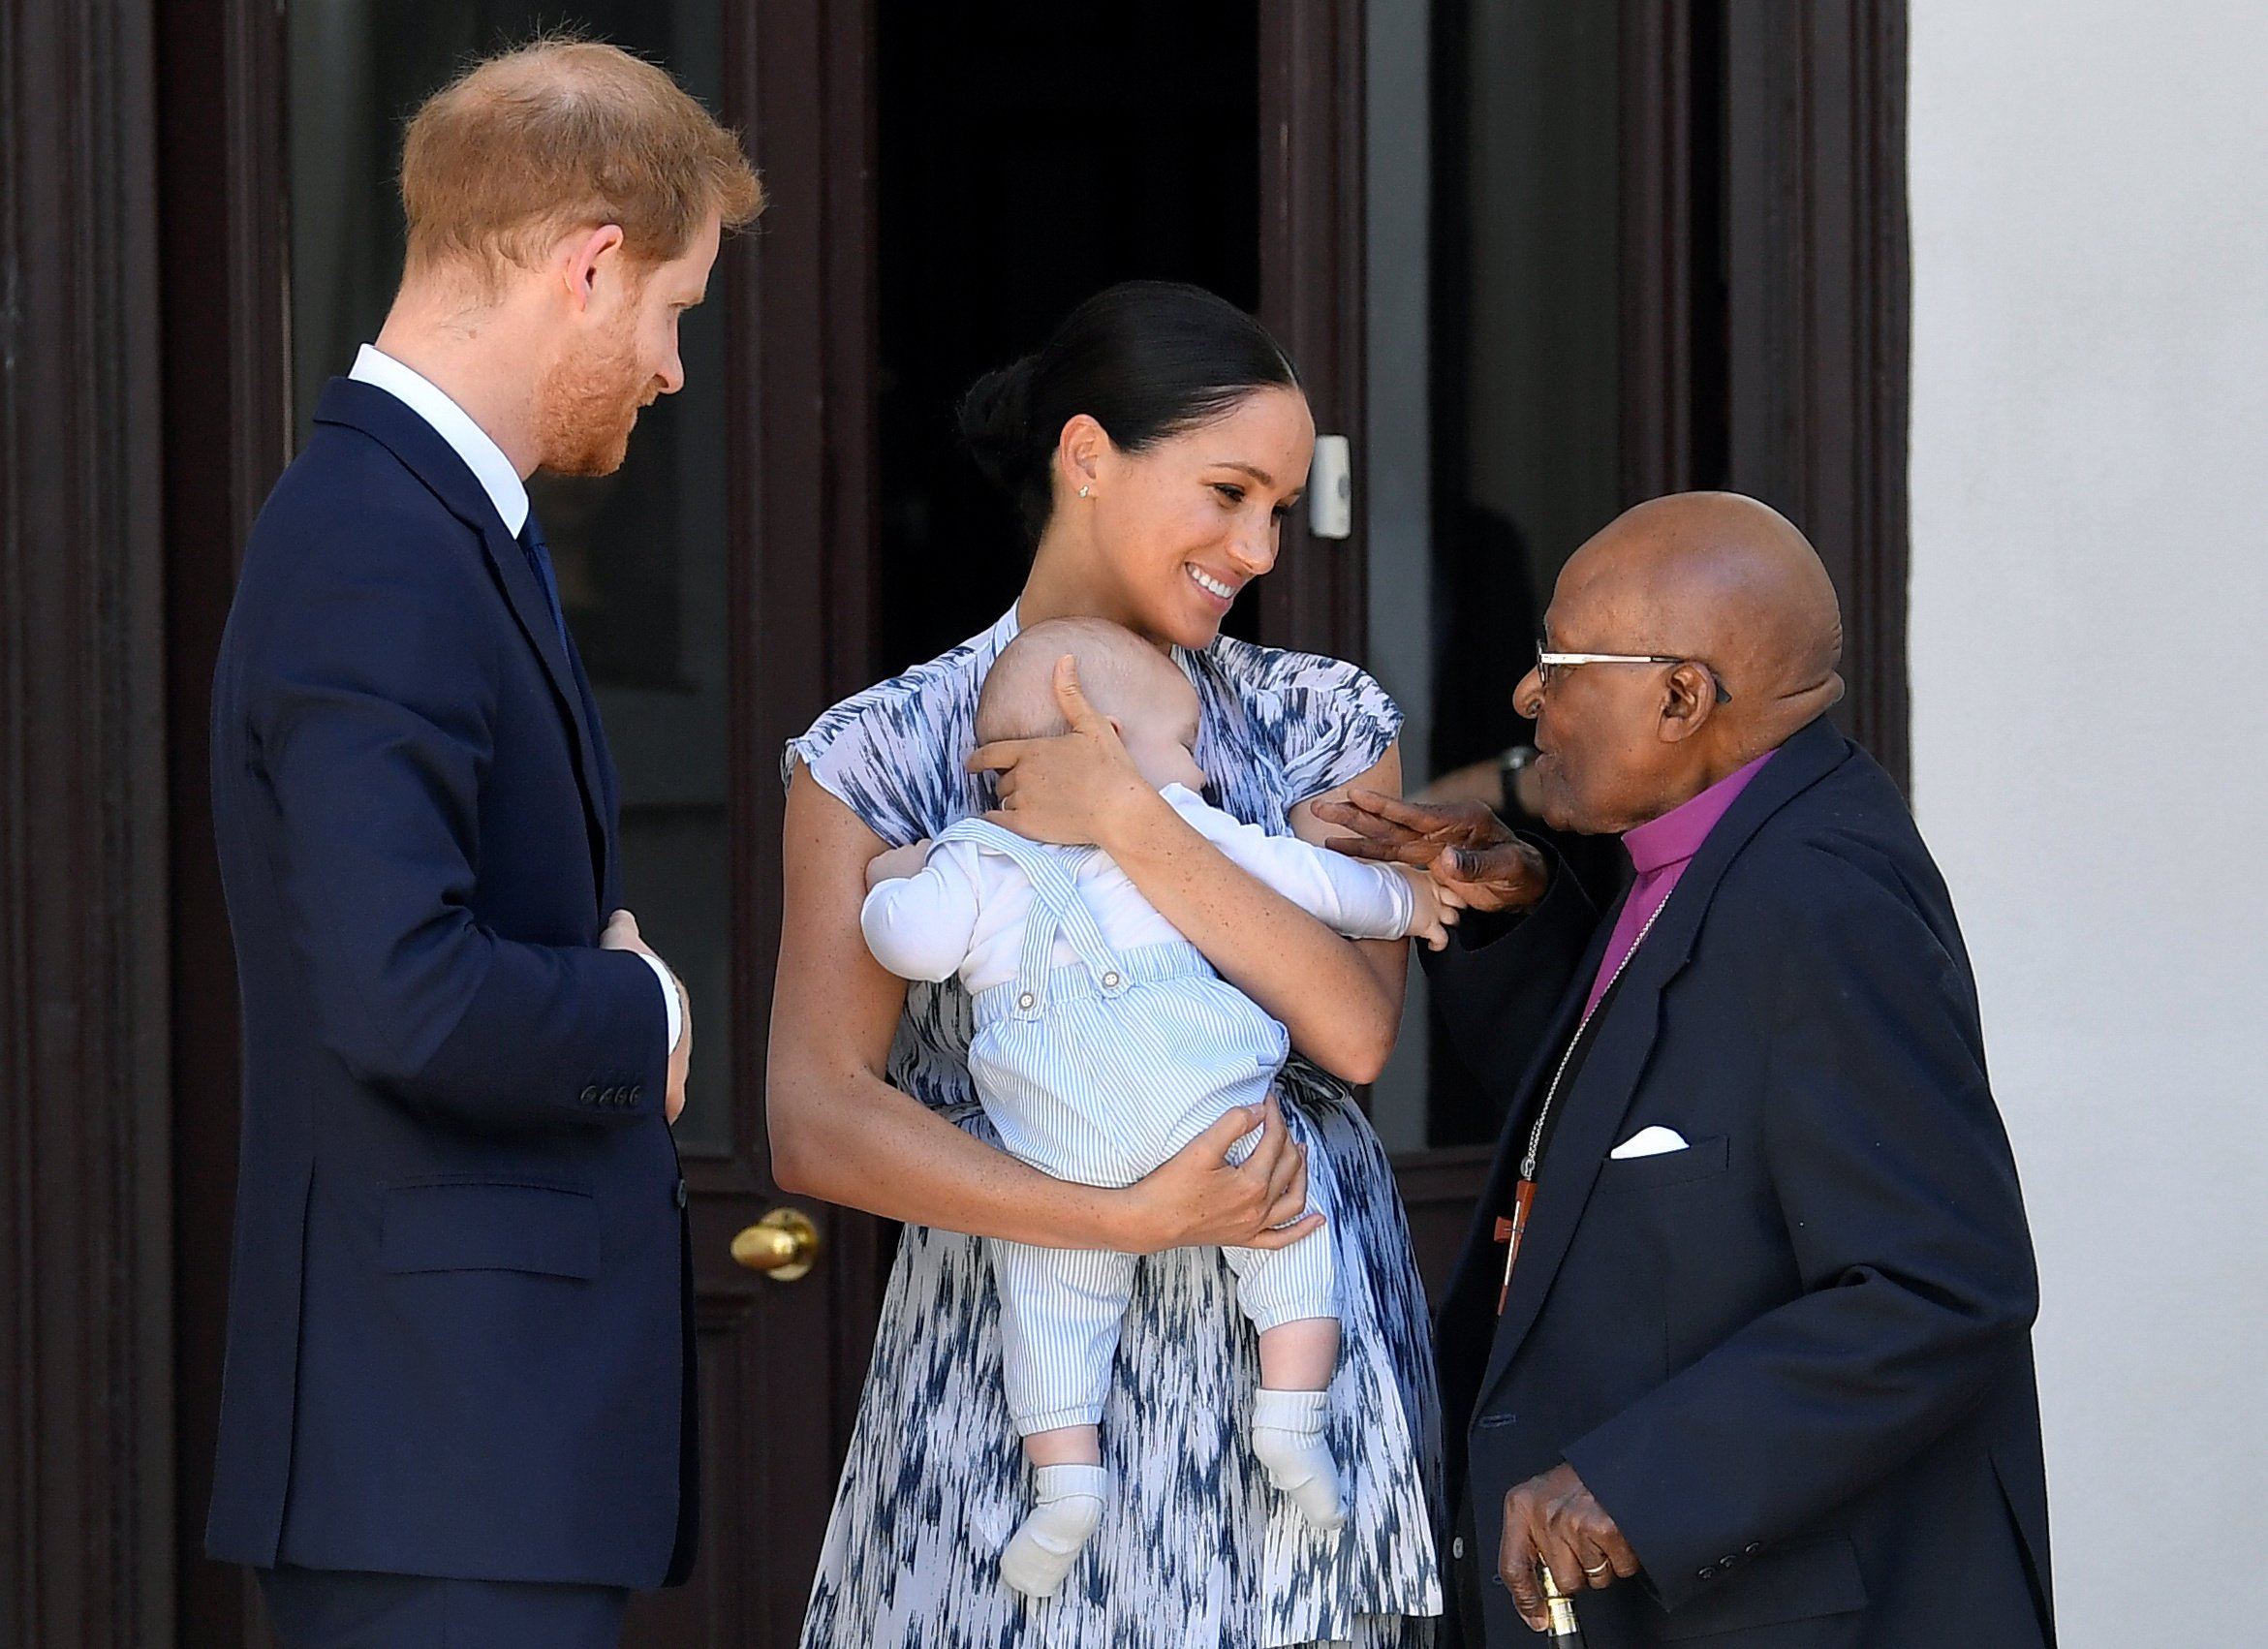 Prince Harry, Duke of Sussex, Meghan Markle, Duchess of Sussex and Archie Mountbatten-Windsor meet Archbishop Desmond Tutu on September 25, 2019 in Cape Town, South Africa.   Source: Getty Images